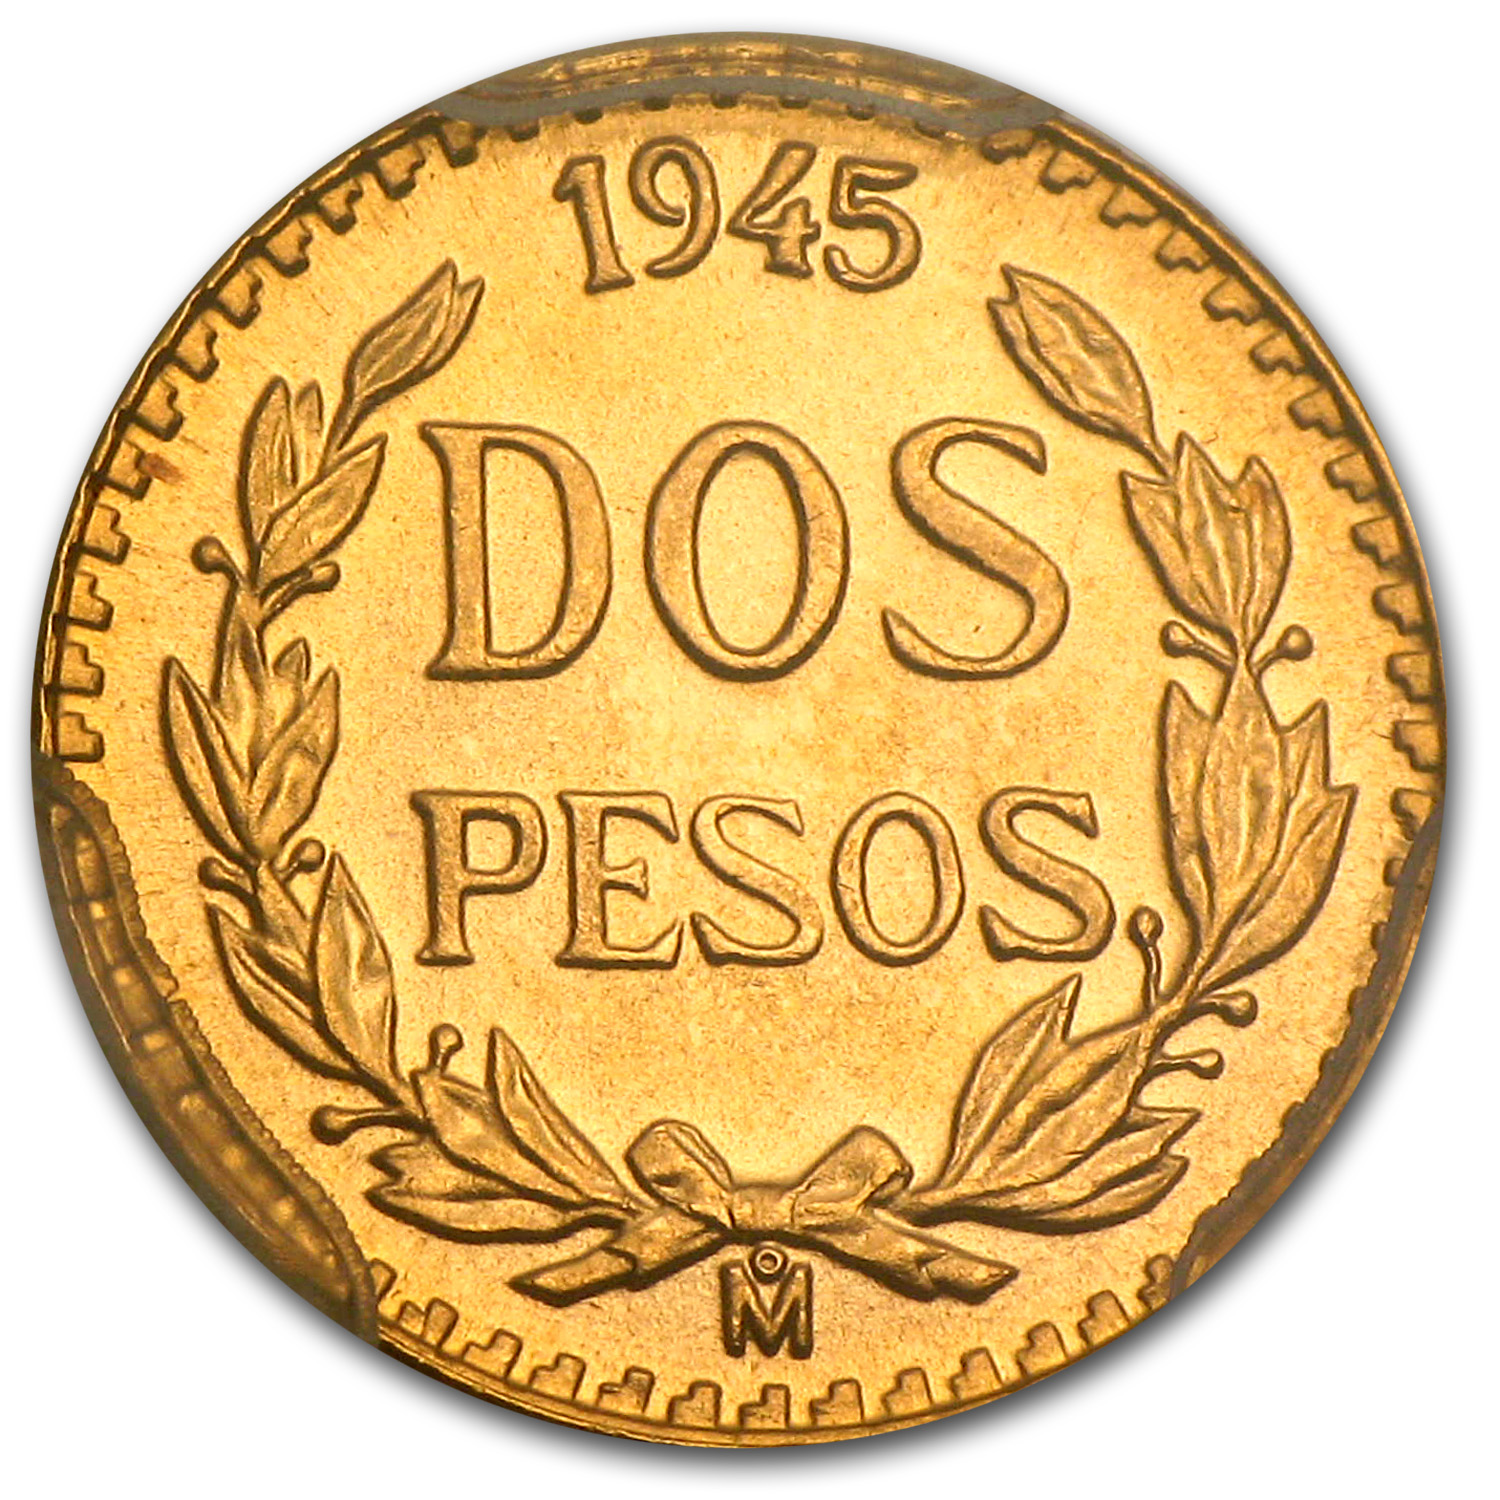 Mexico 1945 2 Pesos Gold Coin - MS-68 PCGS